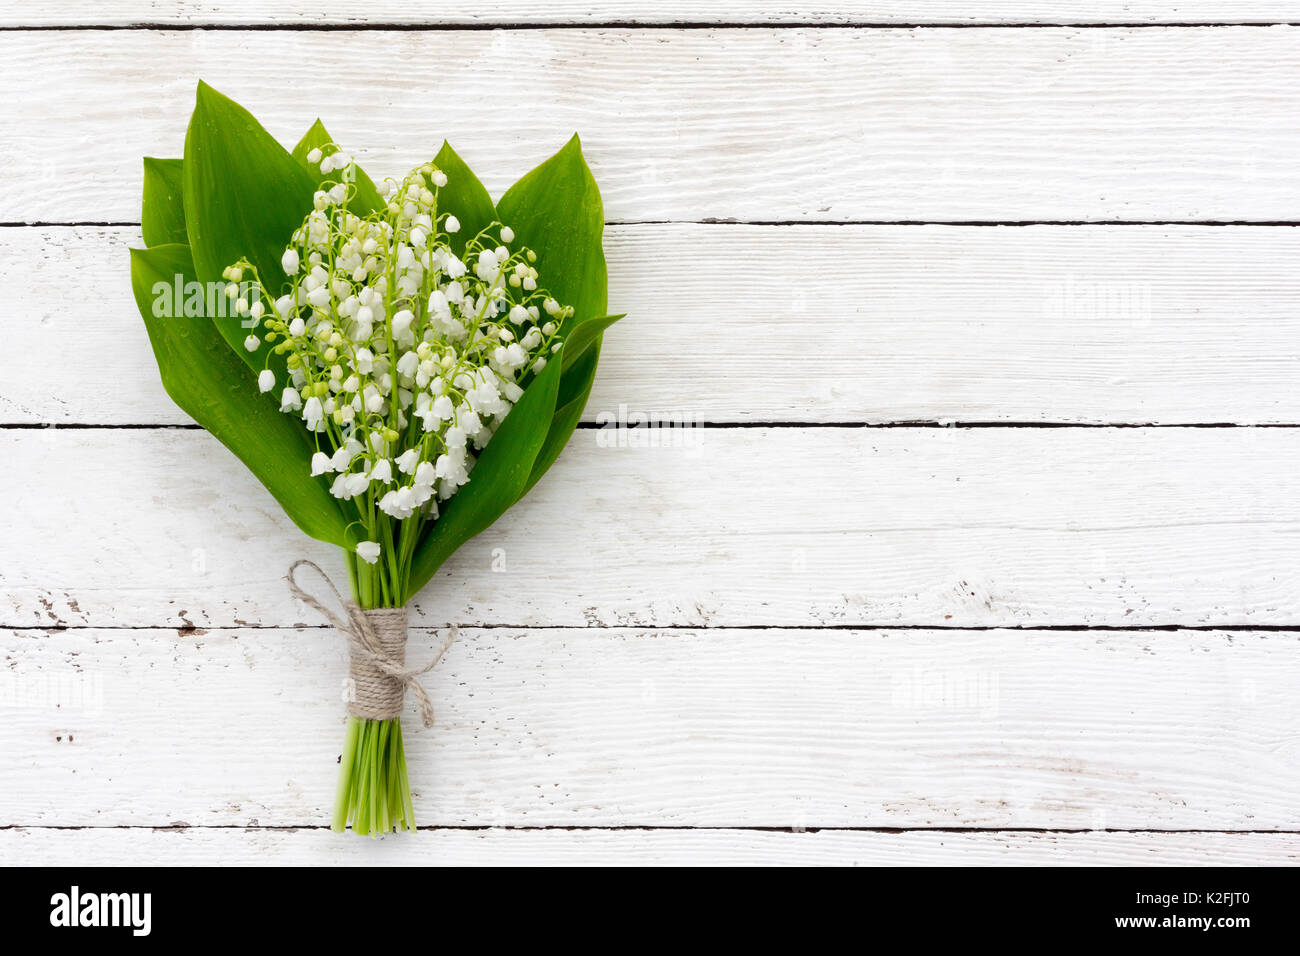 Bouquet Of Lilies Of The Valley Flowers With Green Leaves Tied With